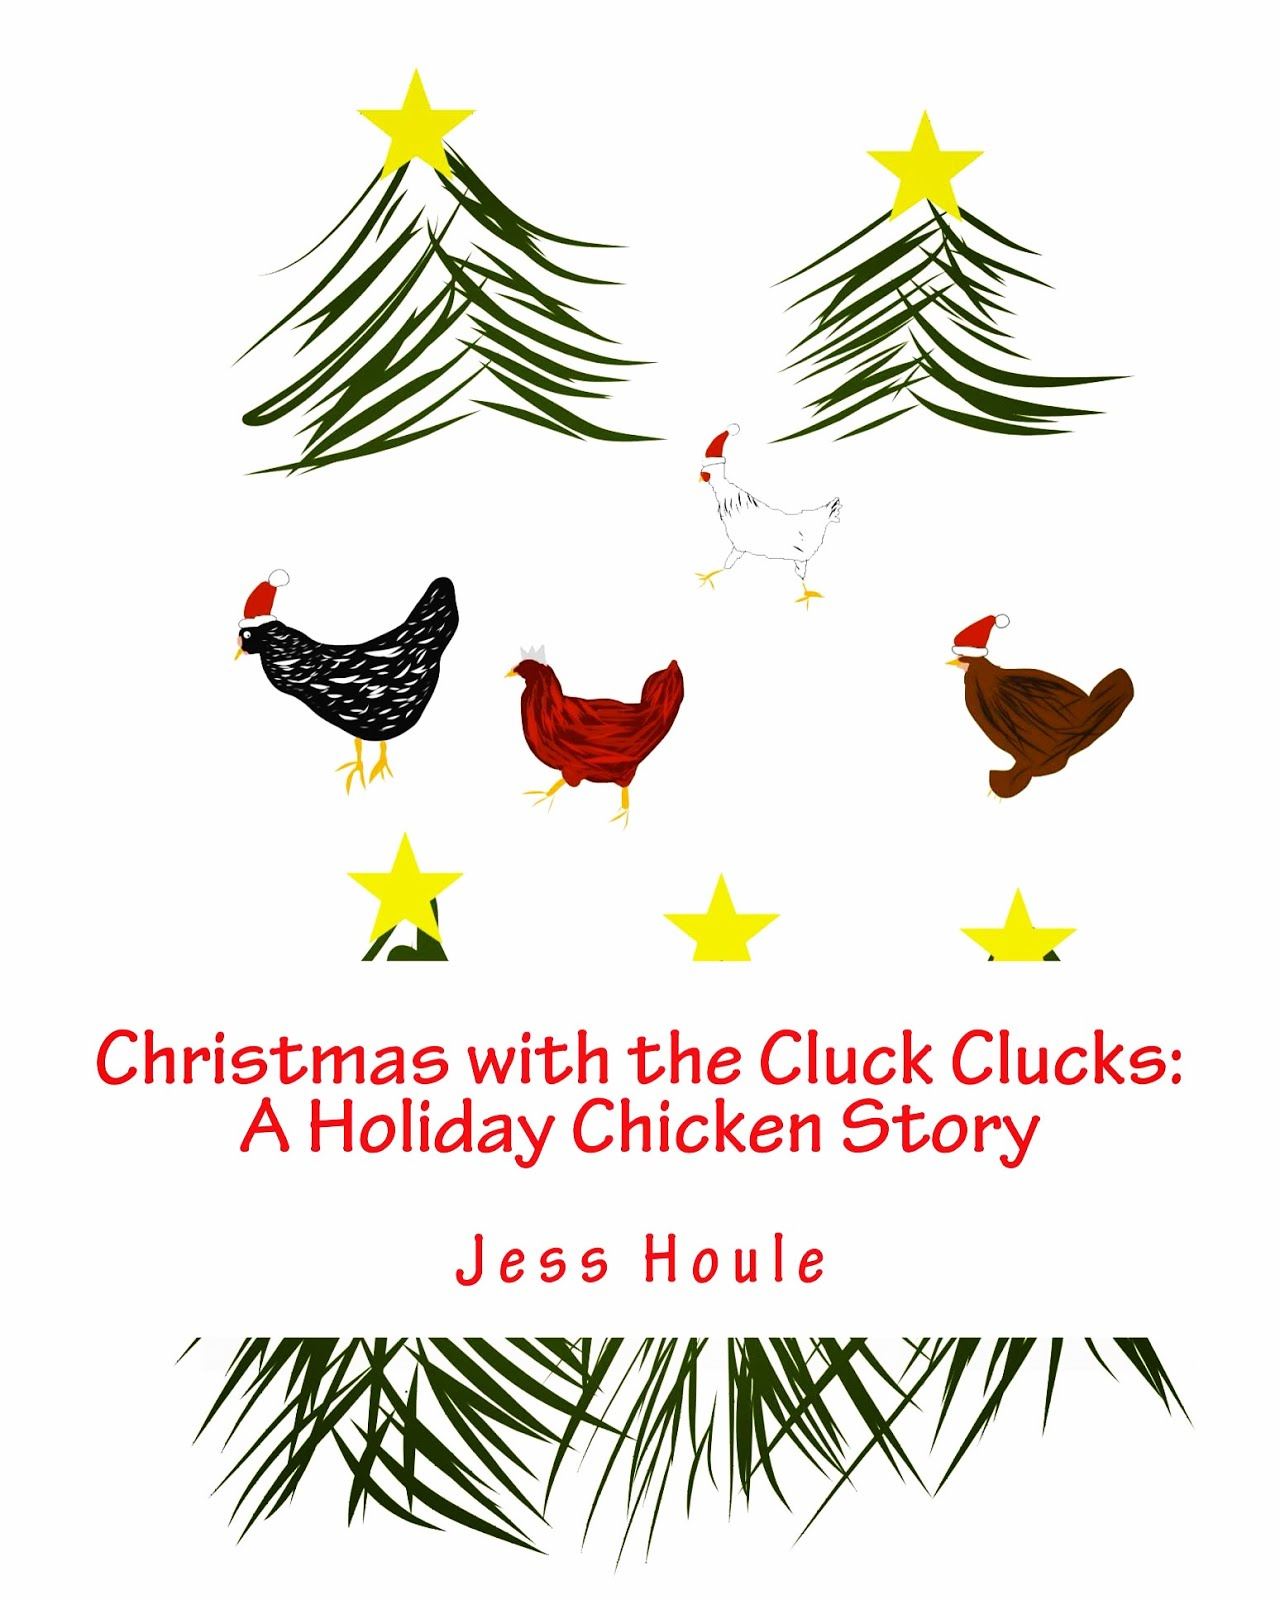 Christmas with the Cluck Clucks